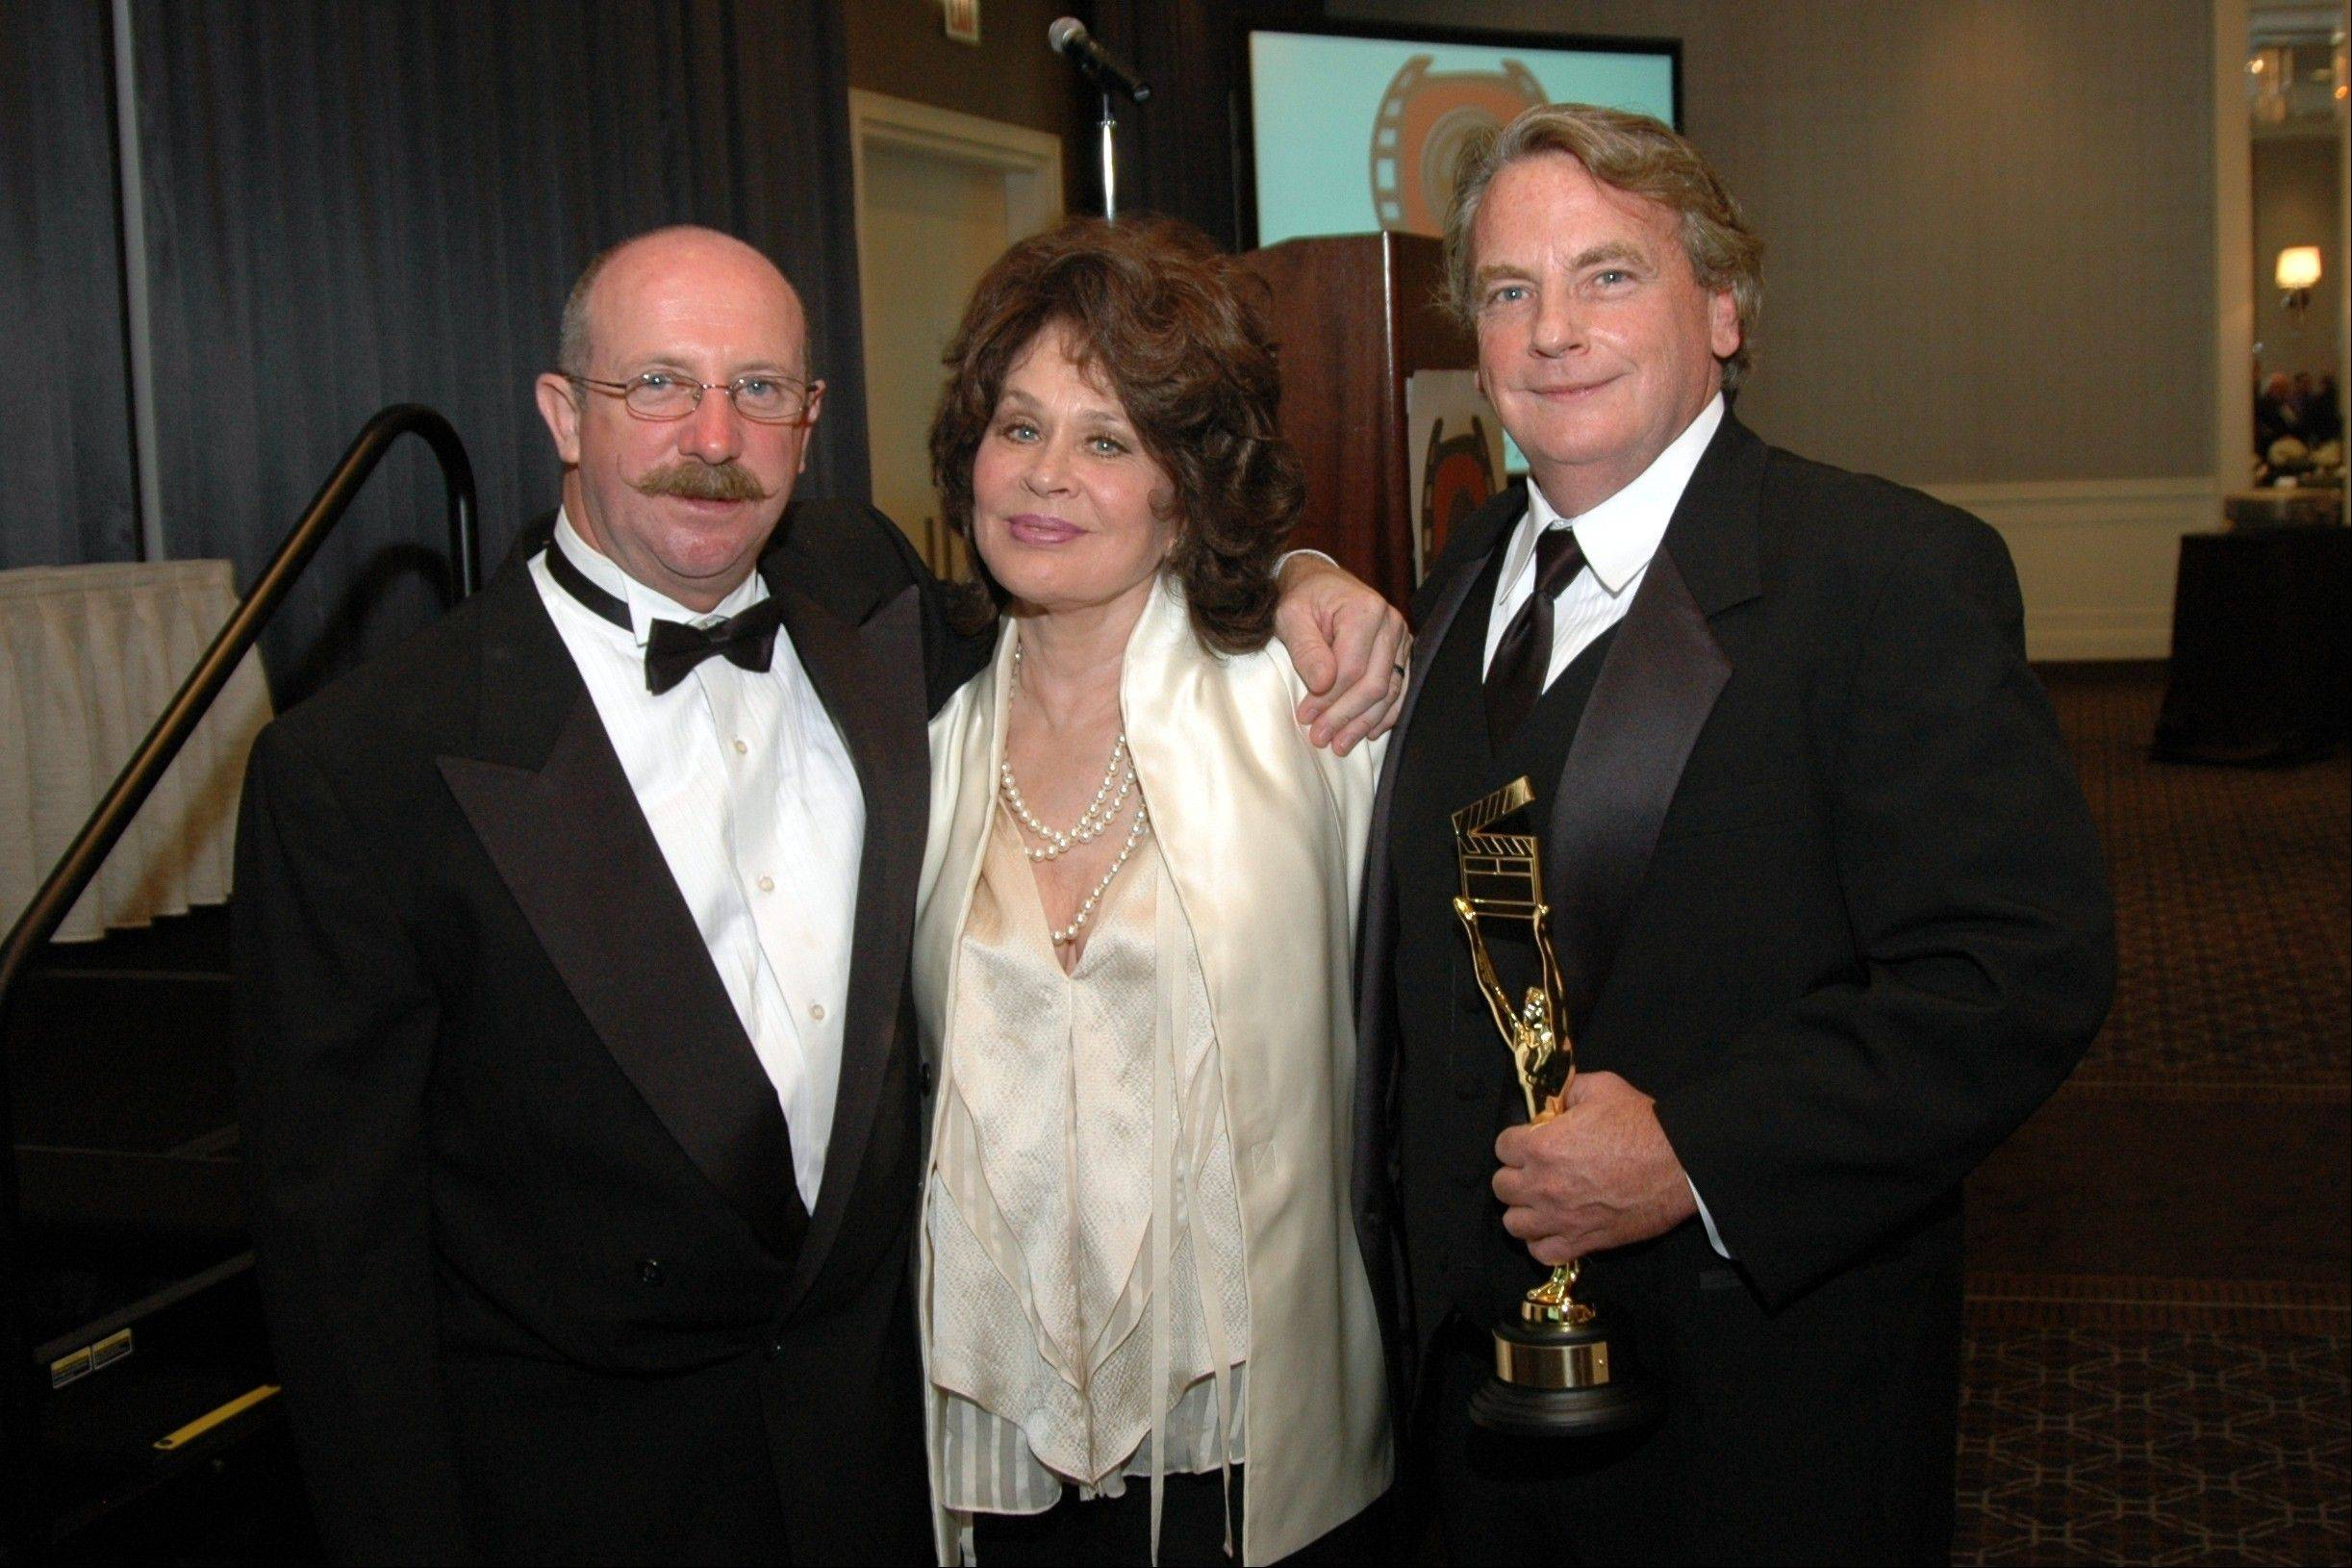 The Naperville Independent Film Festival screens features, documentaries, shorts and, now, music videos, as well as workshops and appearances by movie makers and actors. Screenplay winner Chris Davane, left, joins star Karen Black and festival founder Edmond Coisson at 2008's Naperville Film Festival.